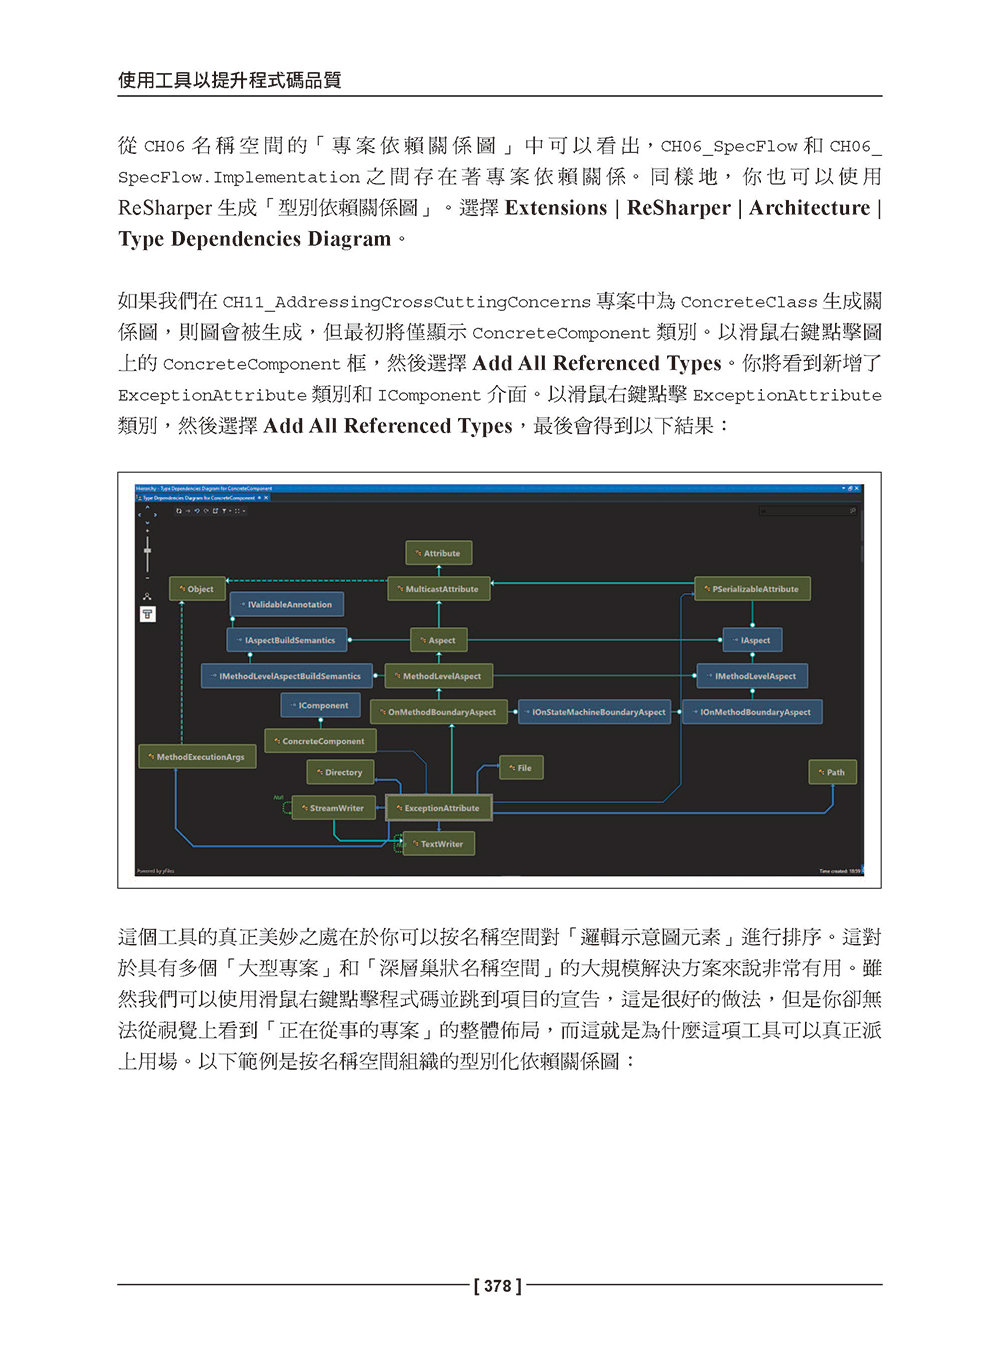 Clean Code 學派的風格實踐:重構遺留 Codebase,突破 C# 效能瓶頸 (Clean Code in C#: Refactor your legacy C# code base and improve application performance by applying best practices)-preview-13